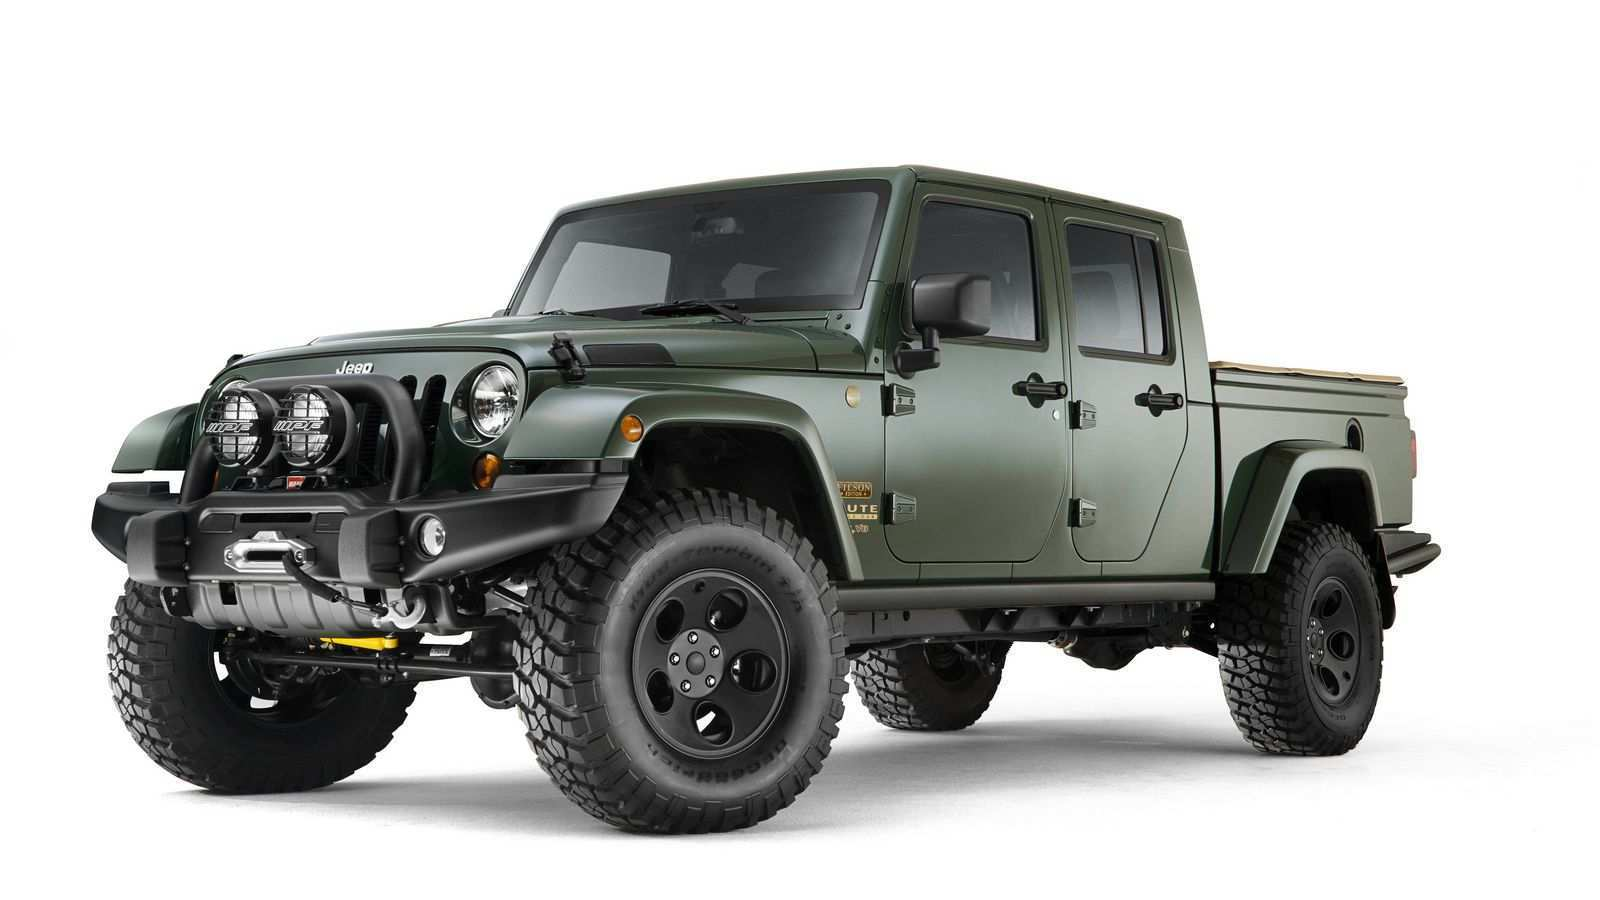 77 New 2019 Jeep Ute Images for 2019 Jeep Ute